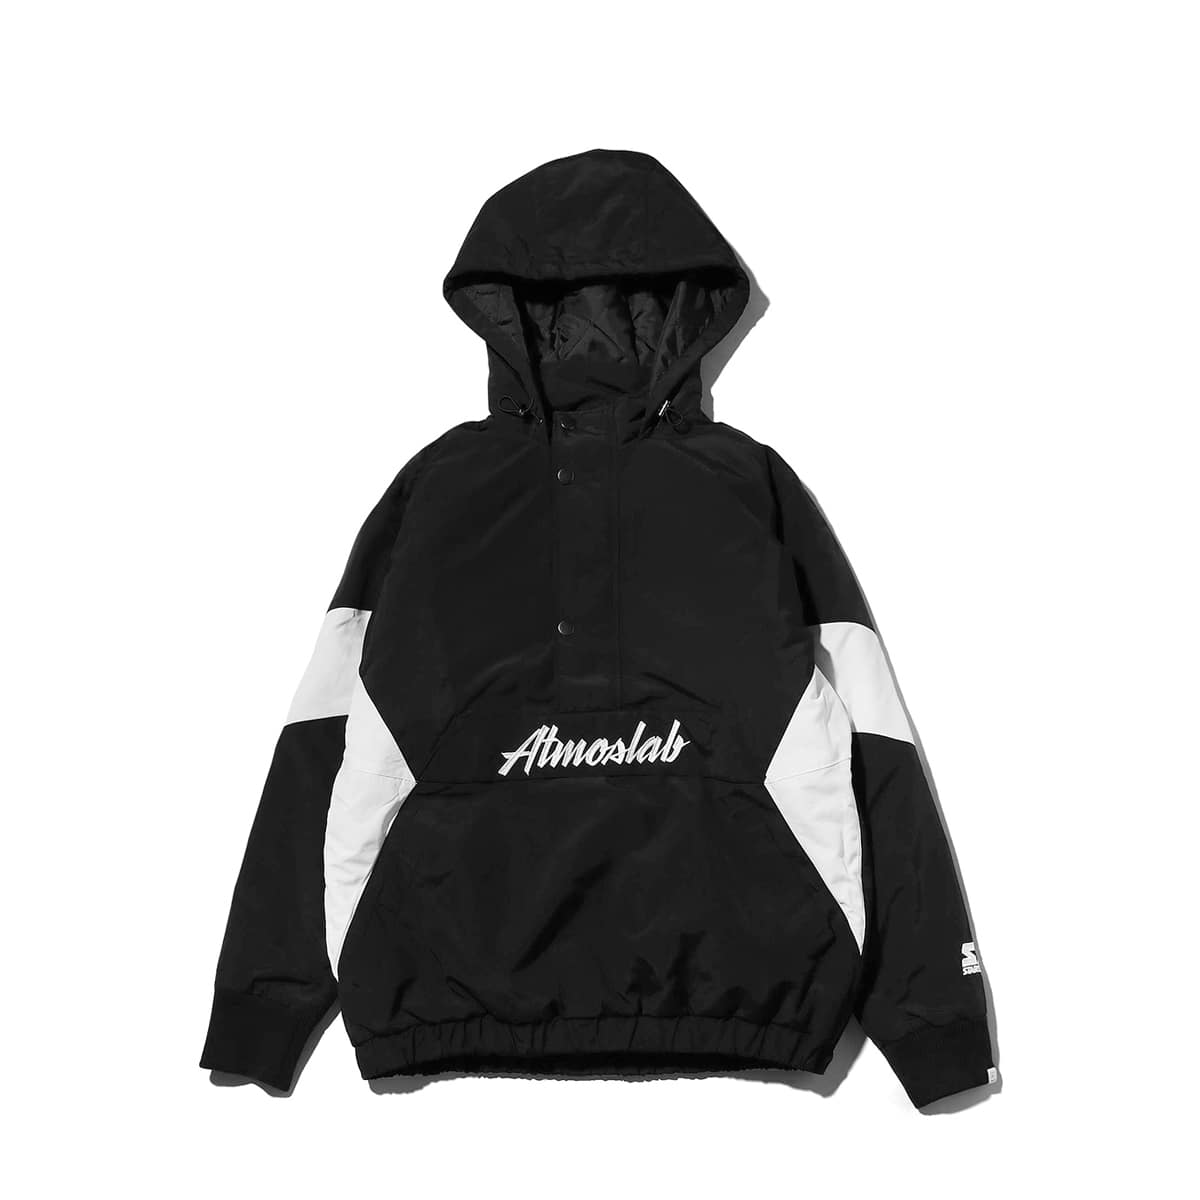 STARTER BLACK LABEL x ATMOS LAB HOCKEY ANORAK JACKET  black_photo_large